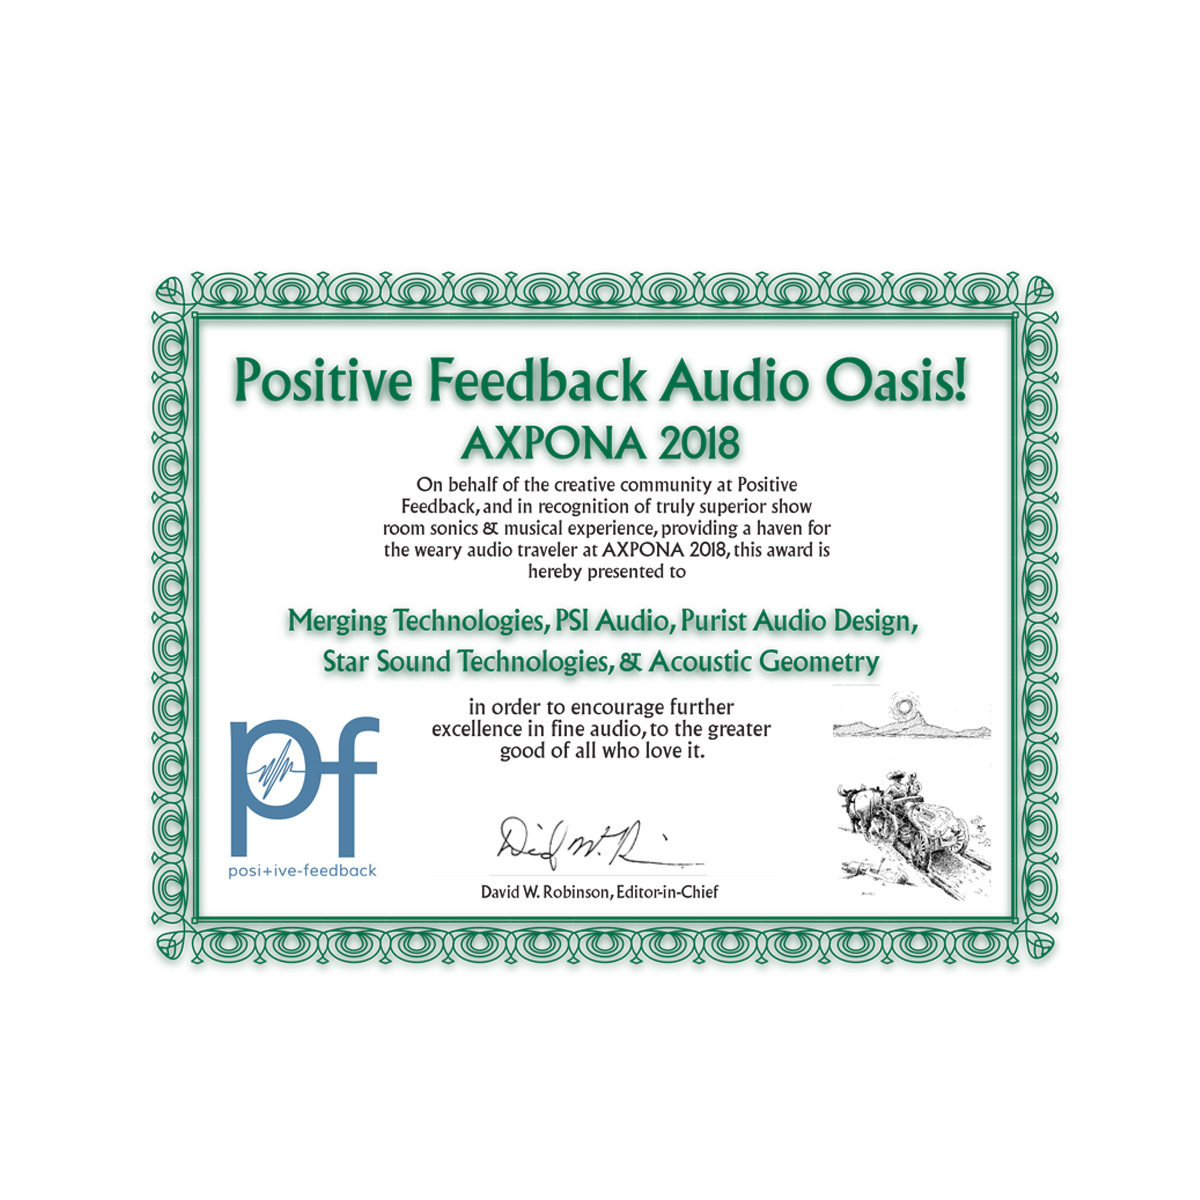 Positive Feedback Audio Oasis - Axpona 2018